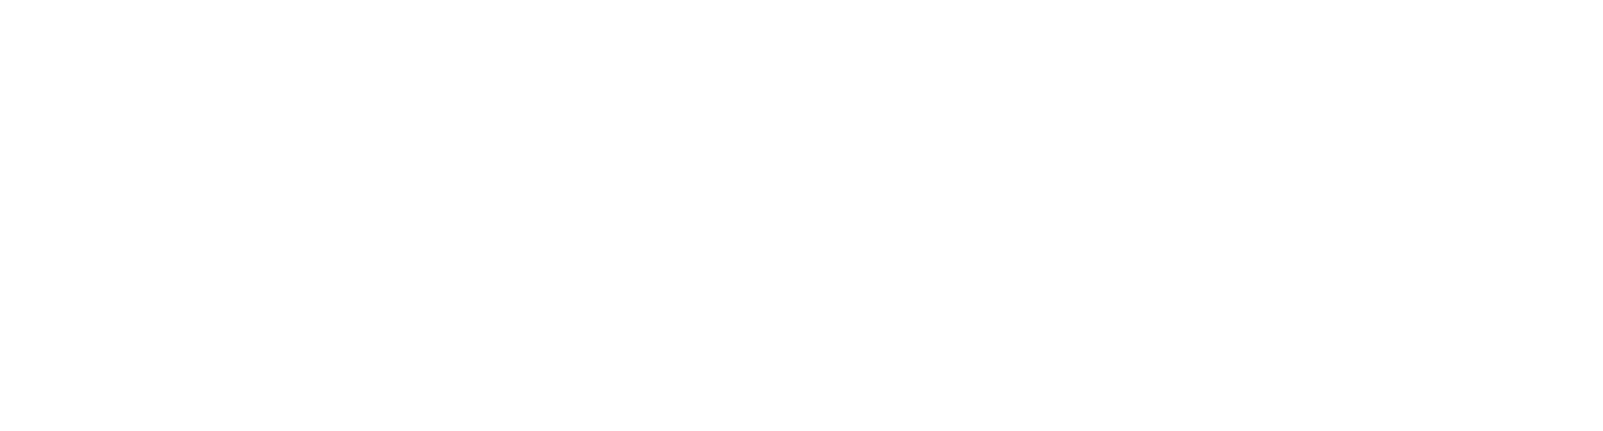 Carlton & Associates Real Estate